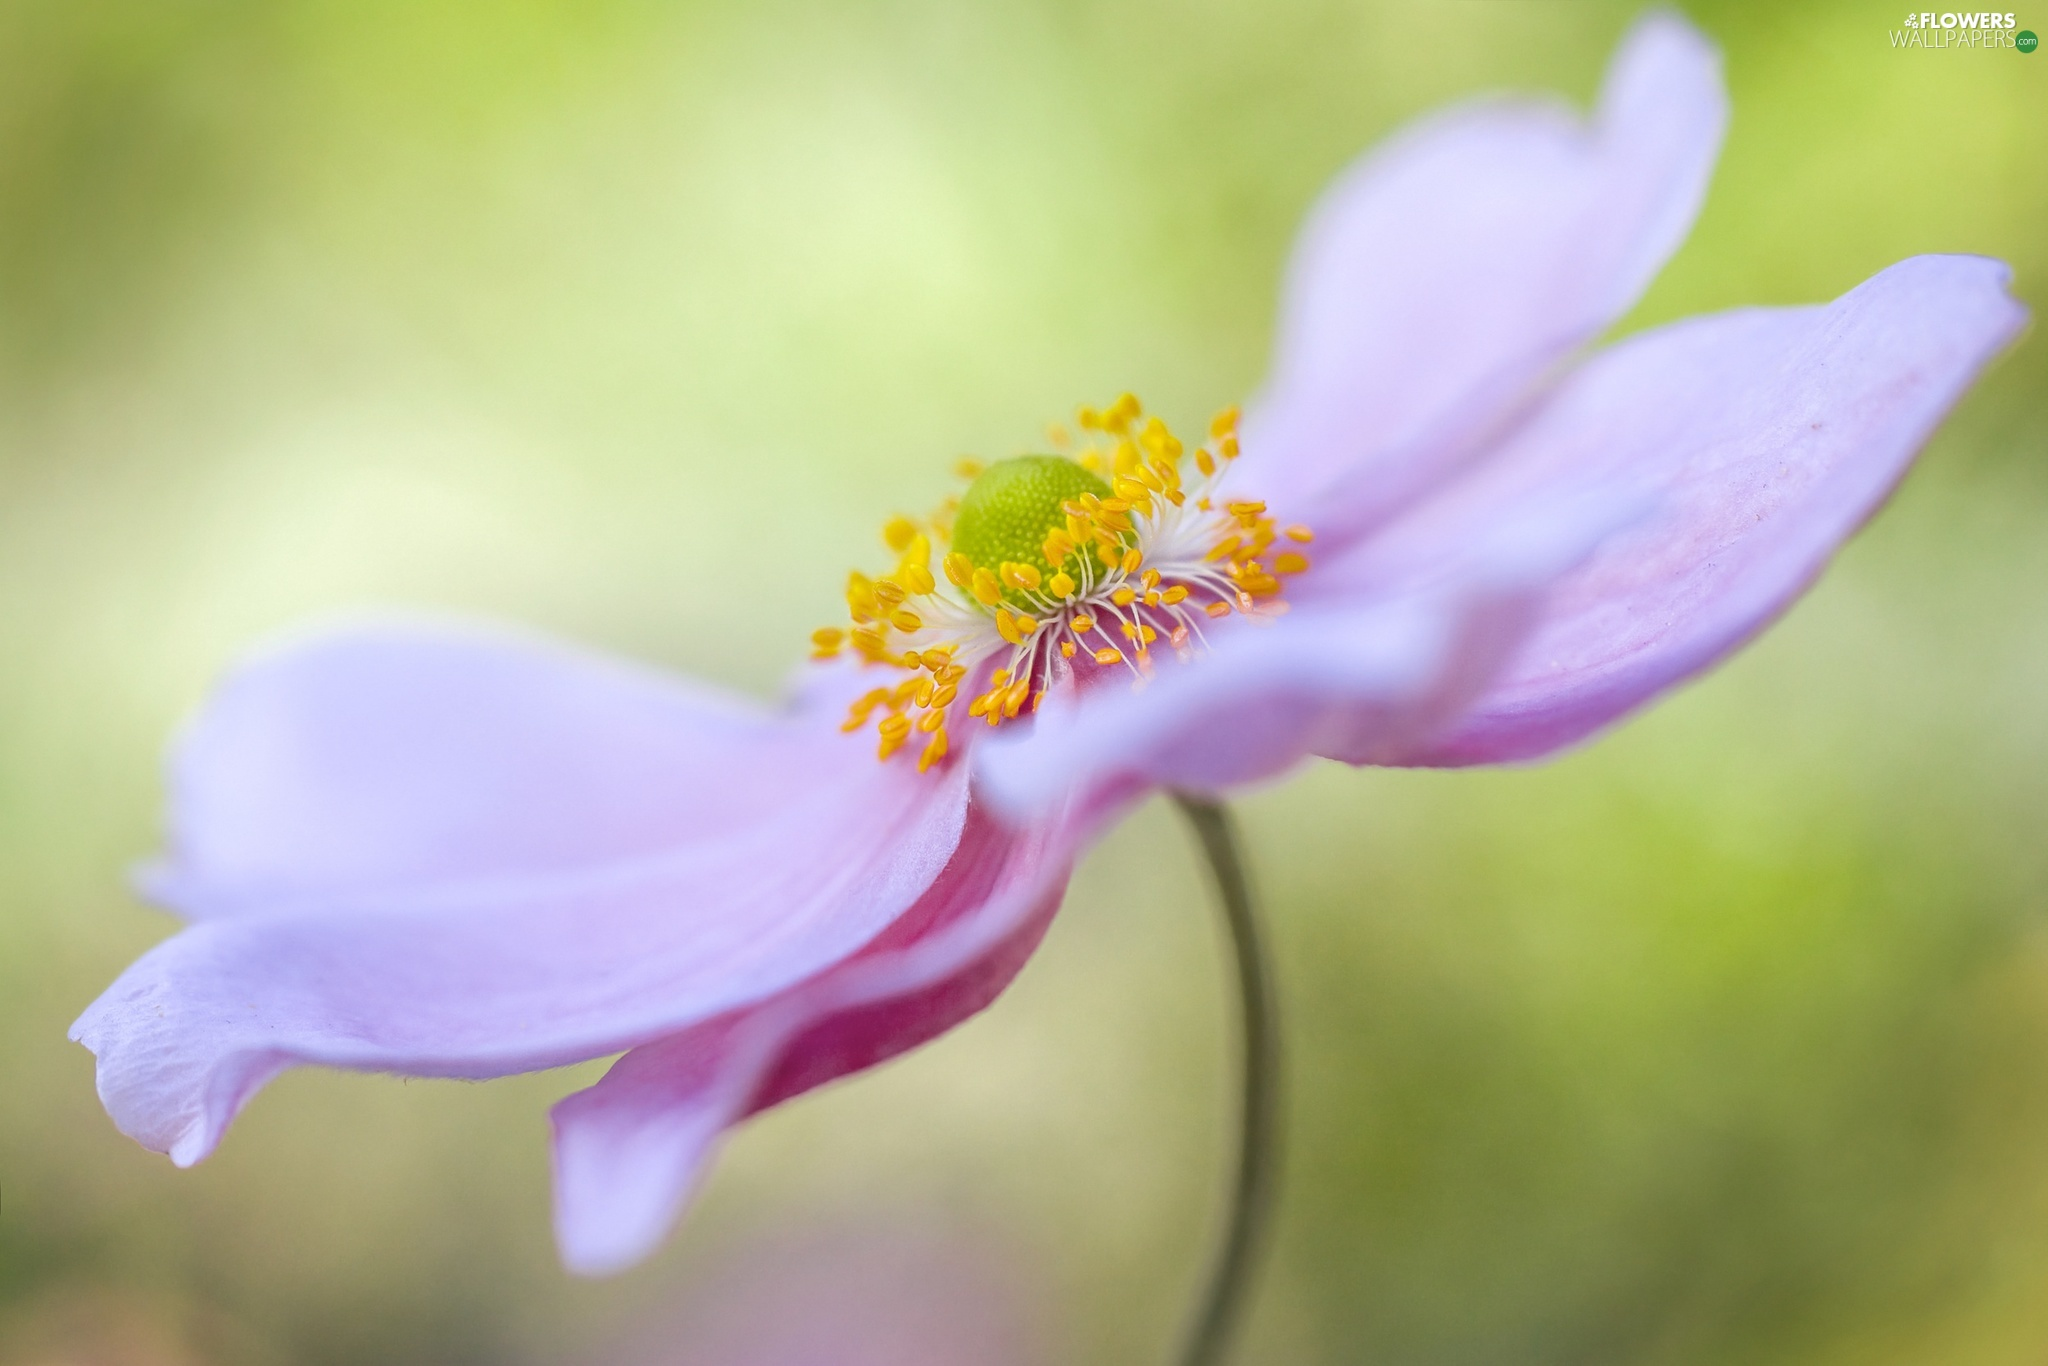 Close, Colourfull Flowers, anemone